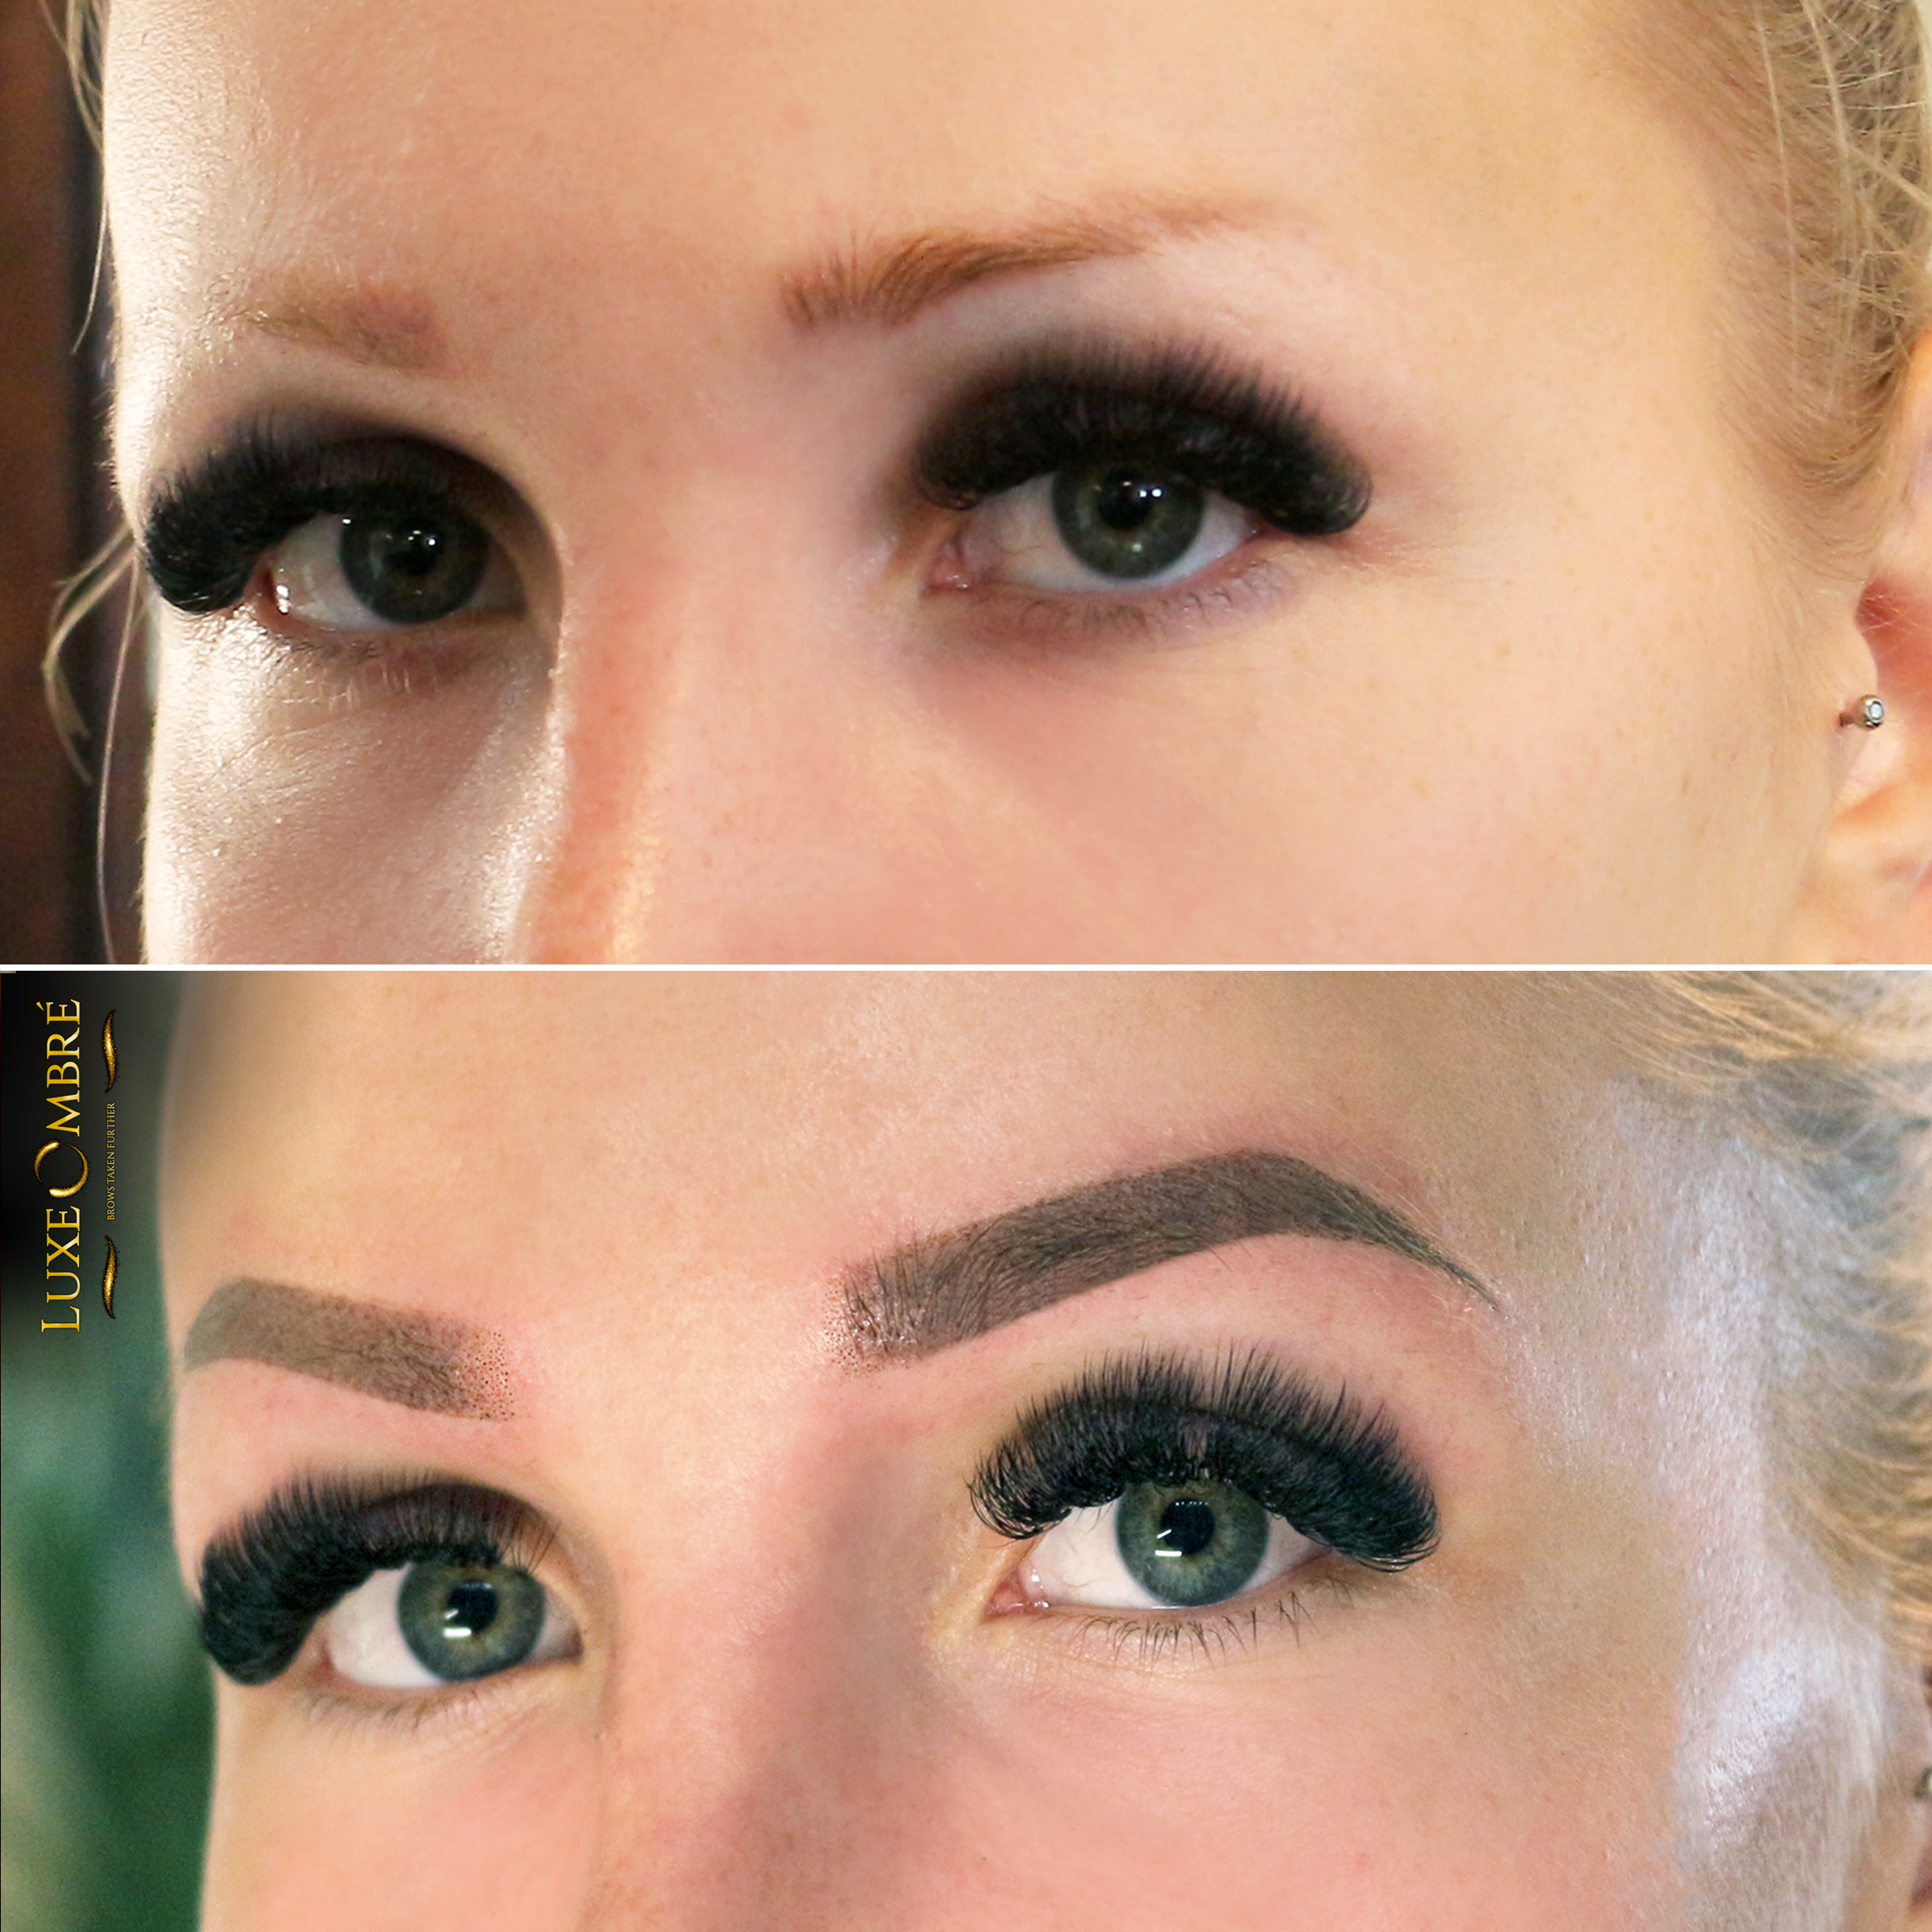 Weak and small brows turned into lush and natural.